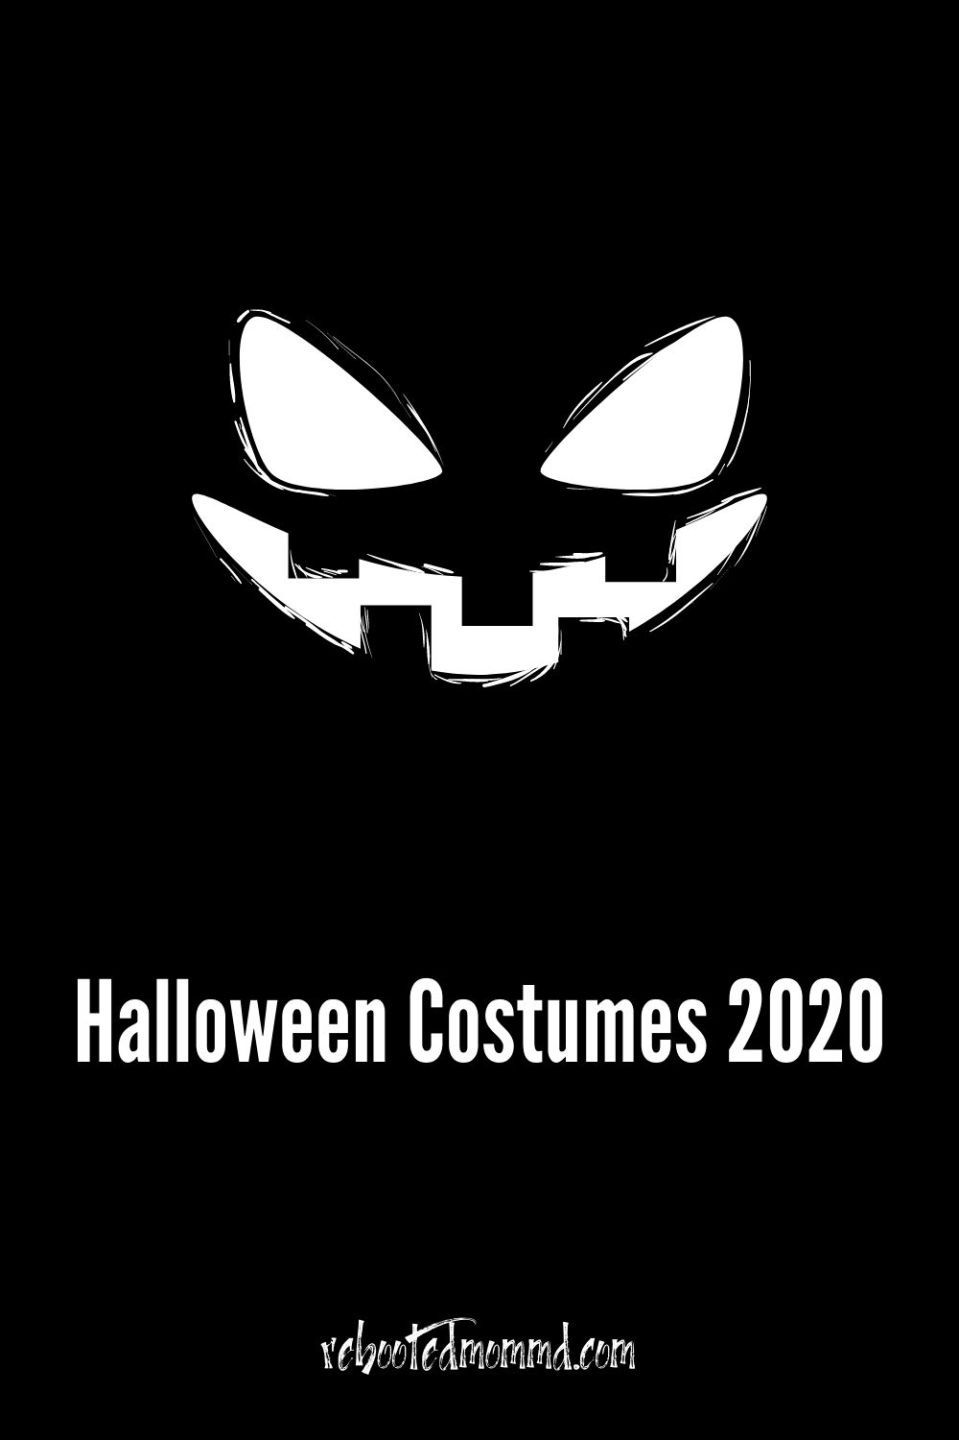 Halloween Costumes for the Year 2020